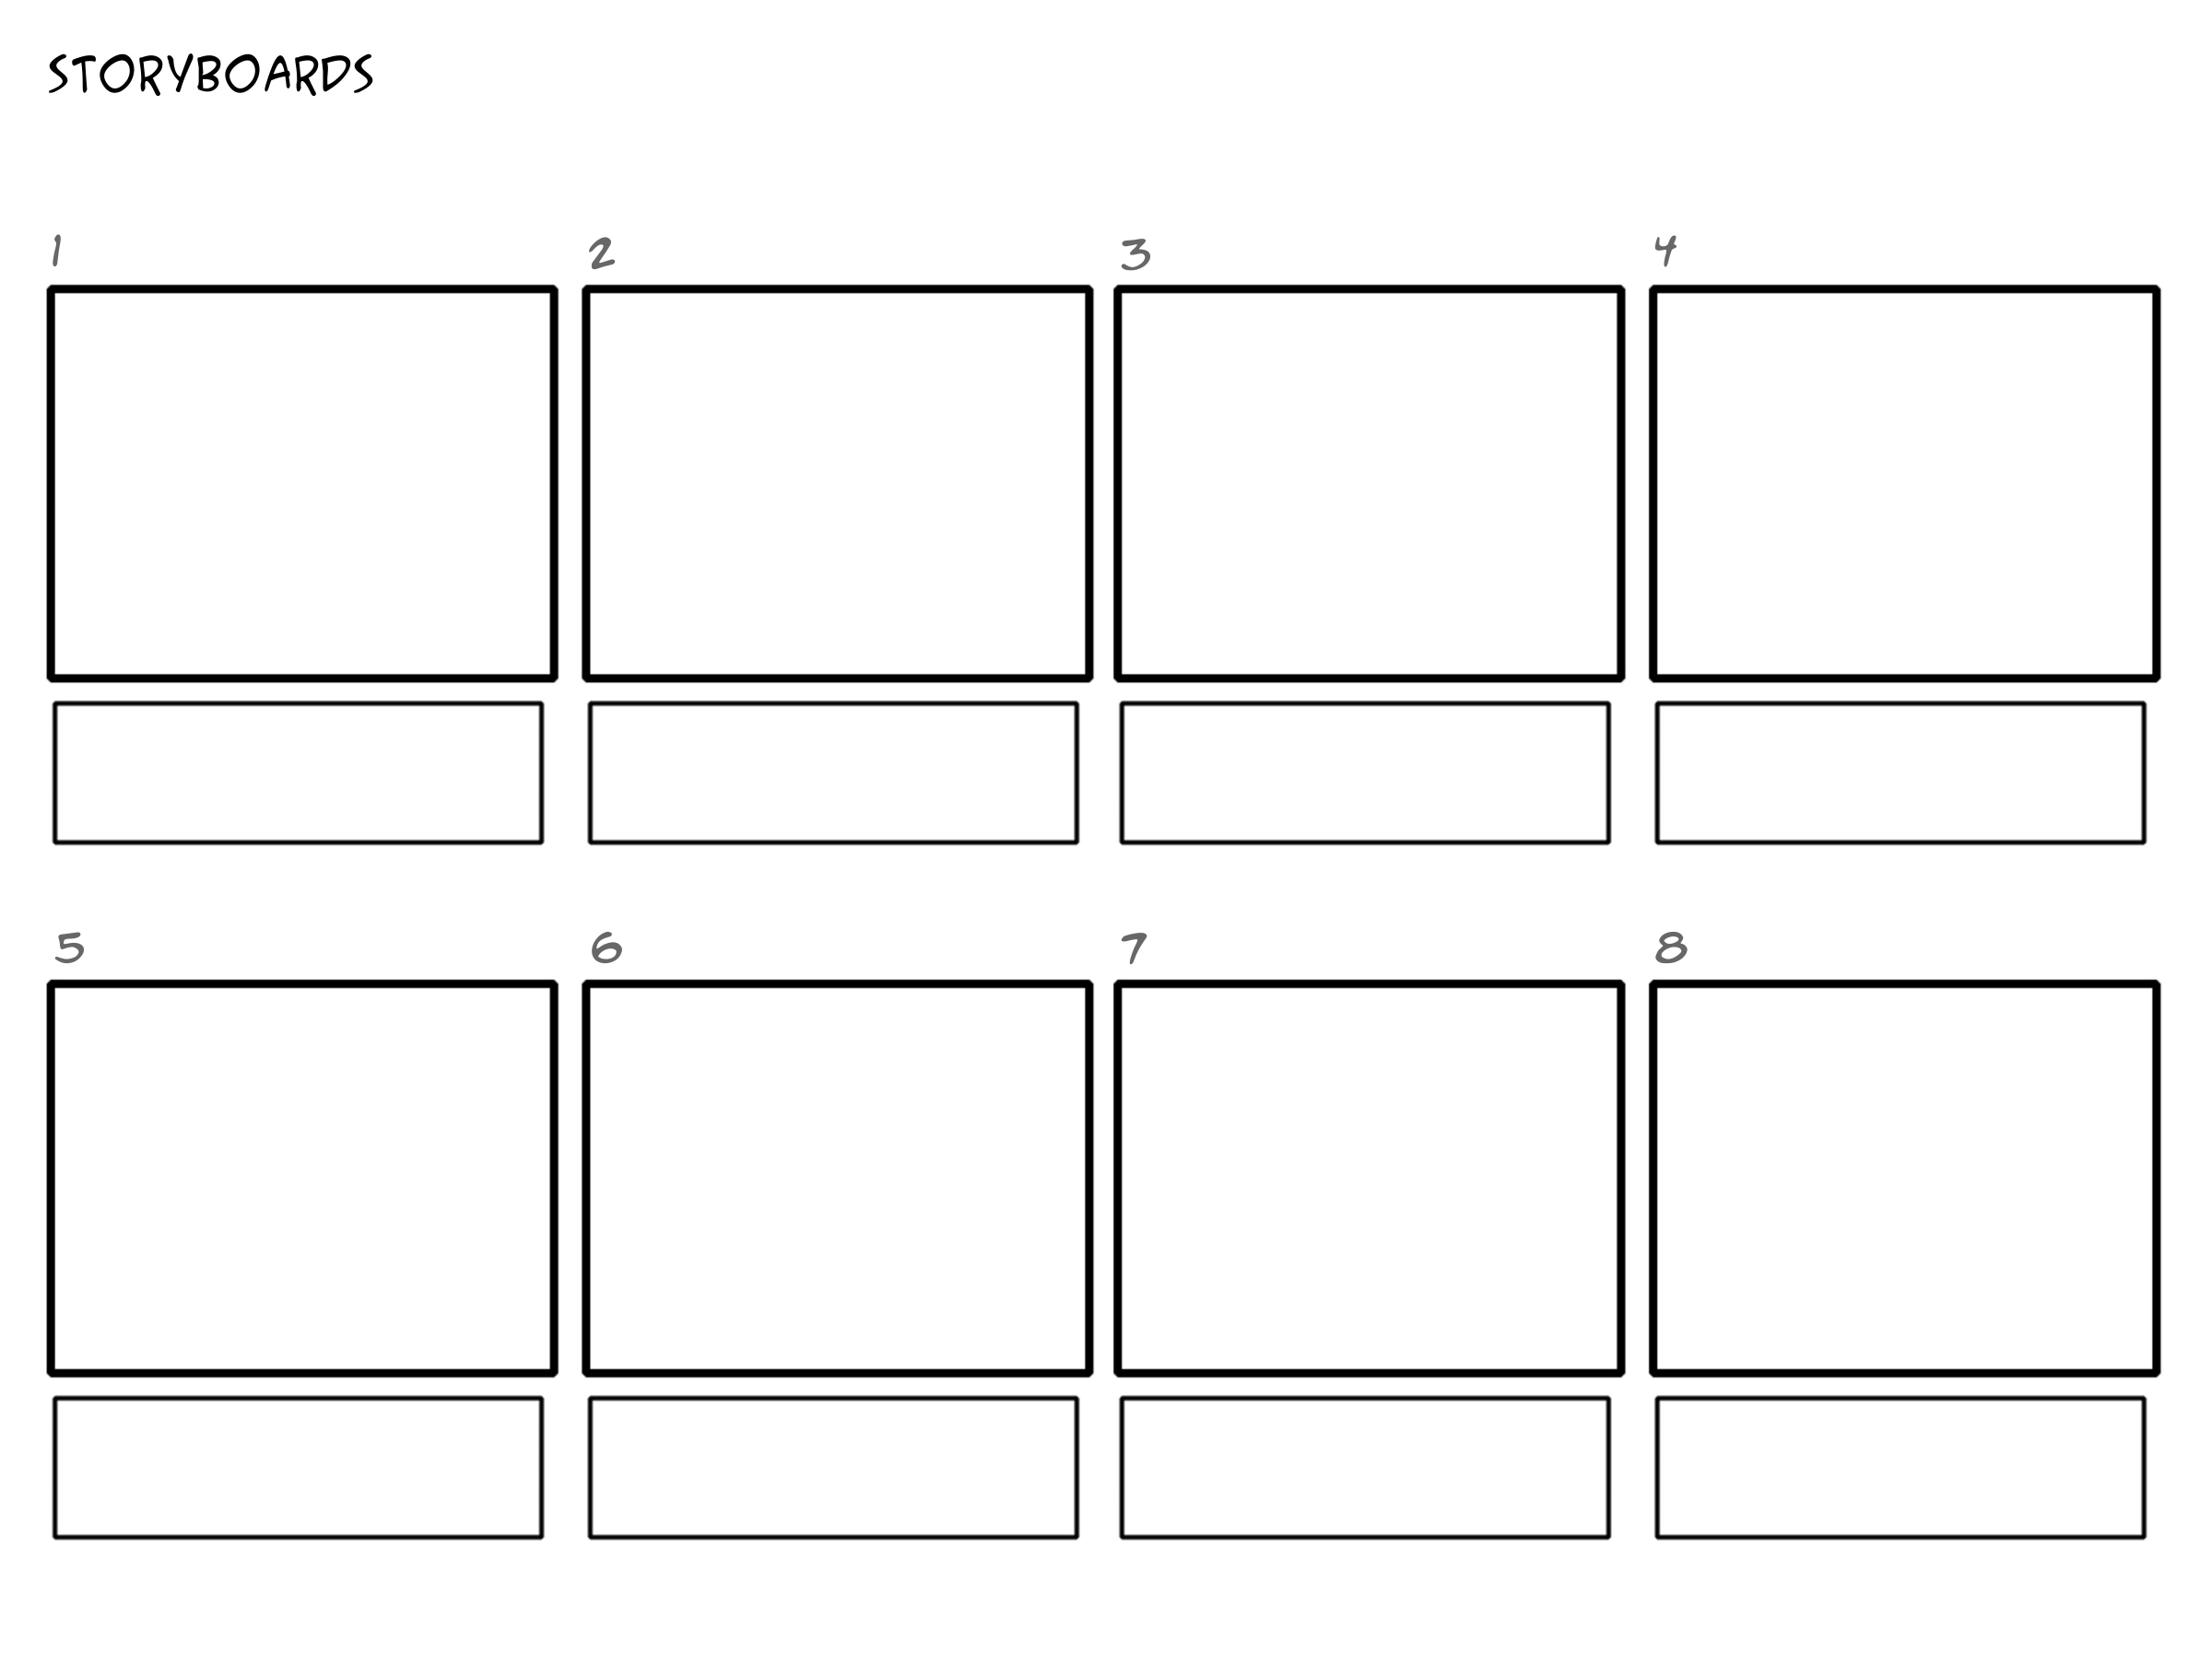 storyboard templates pontydysgu mooc. Black Bedroom Furniture Sets. Home Design Ideas